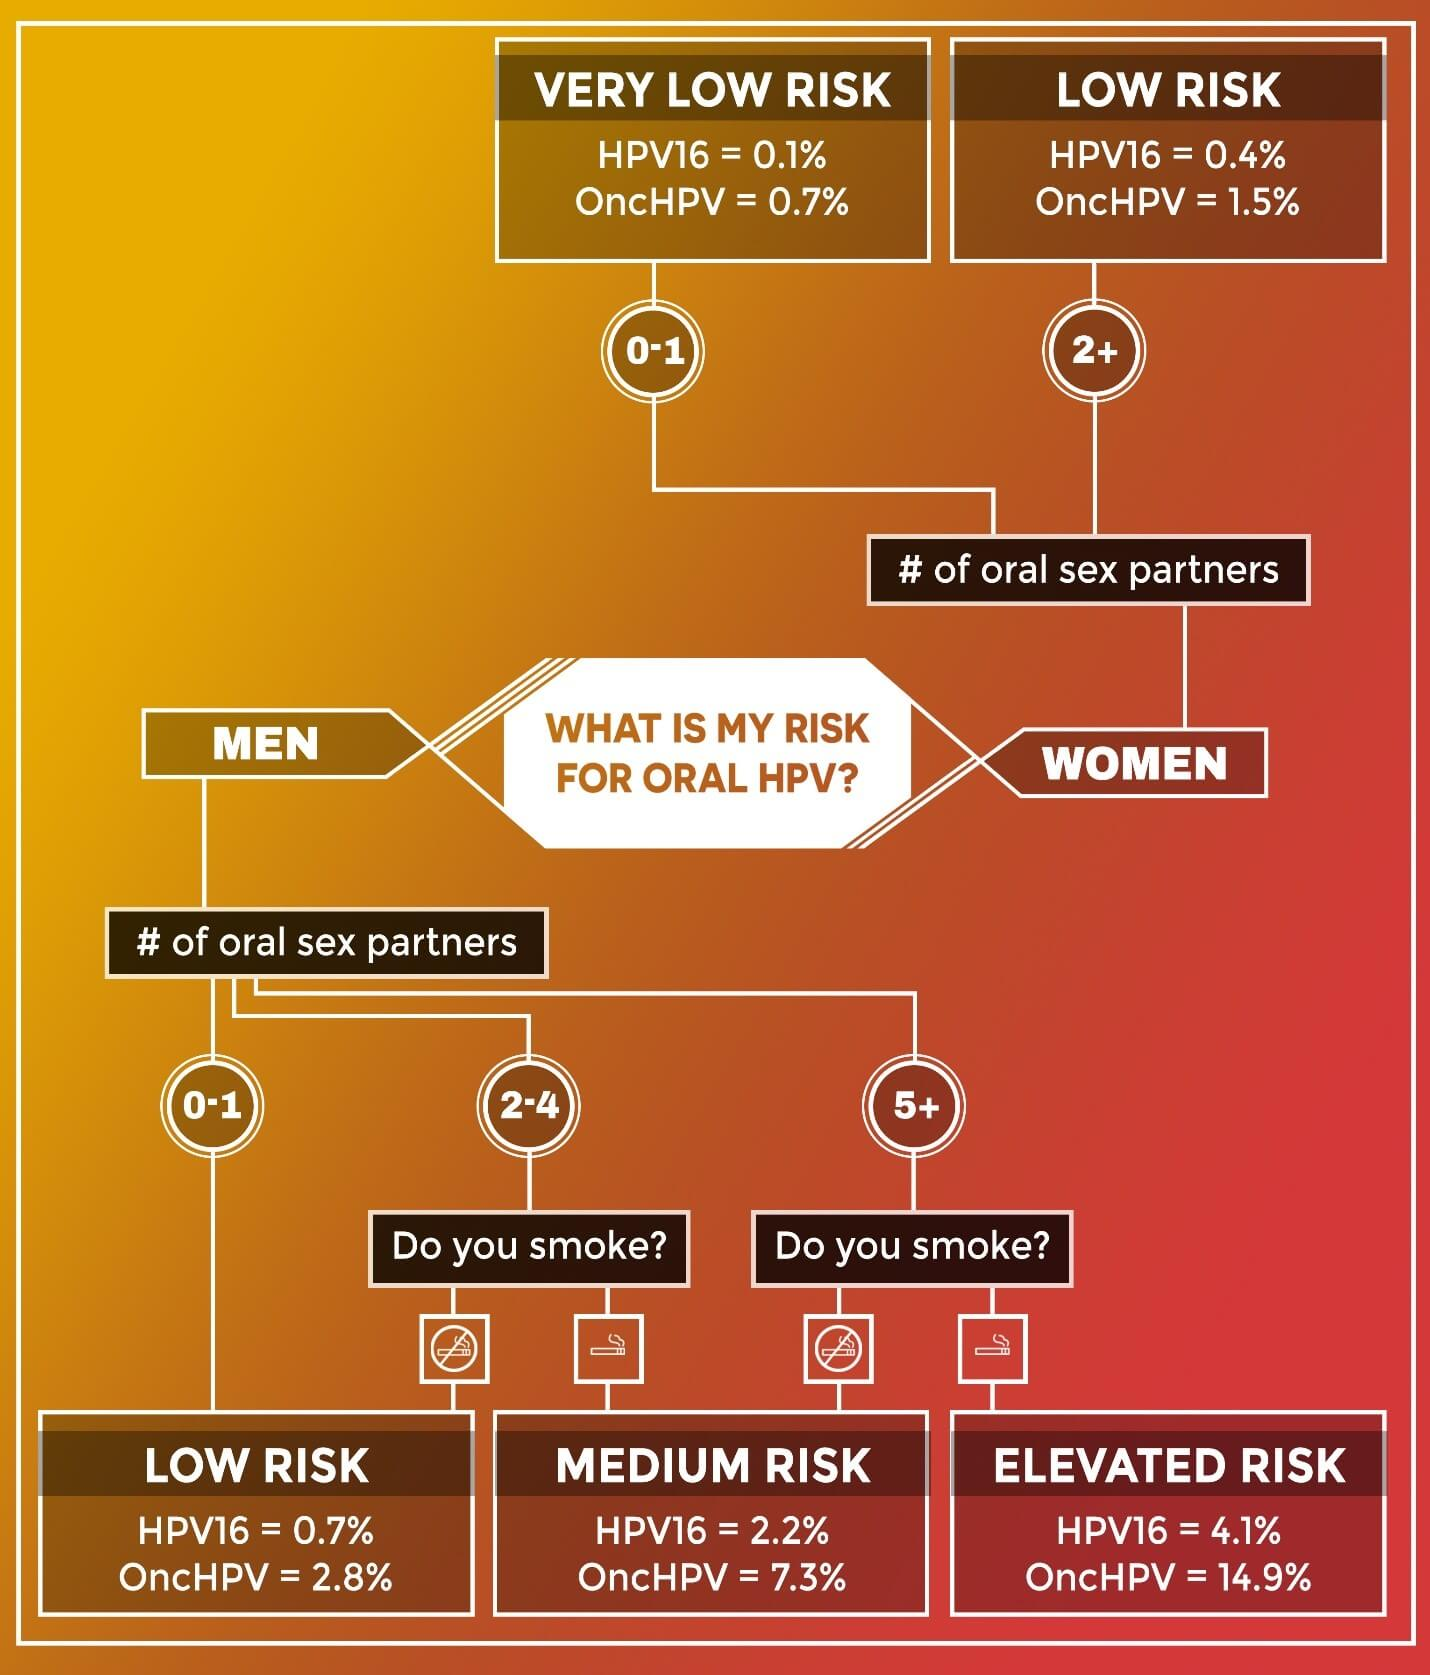 Flowchart of Risks of Oral HPV for Men and Women based on number of oral sex partners and smoking status